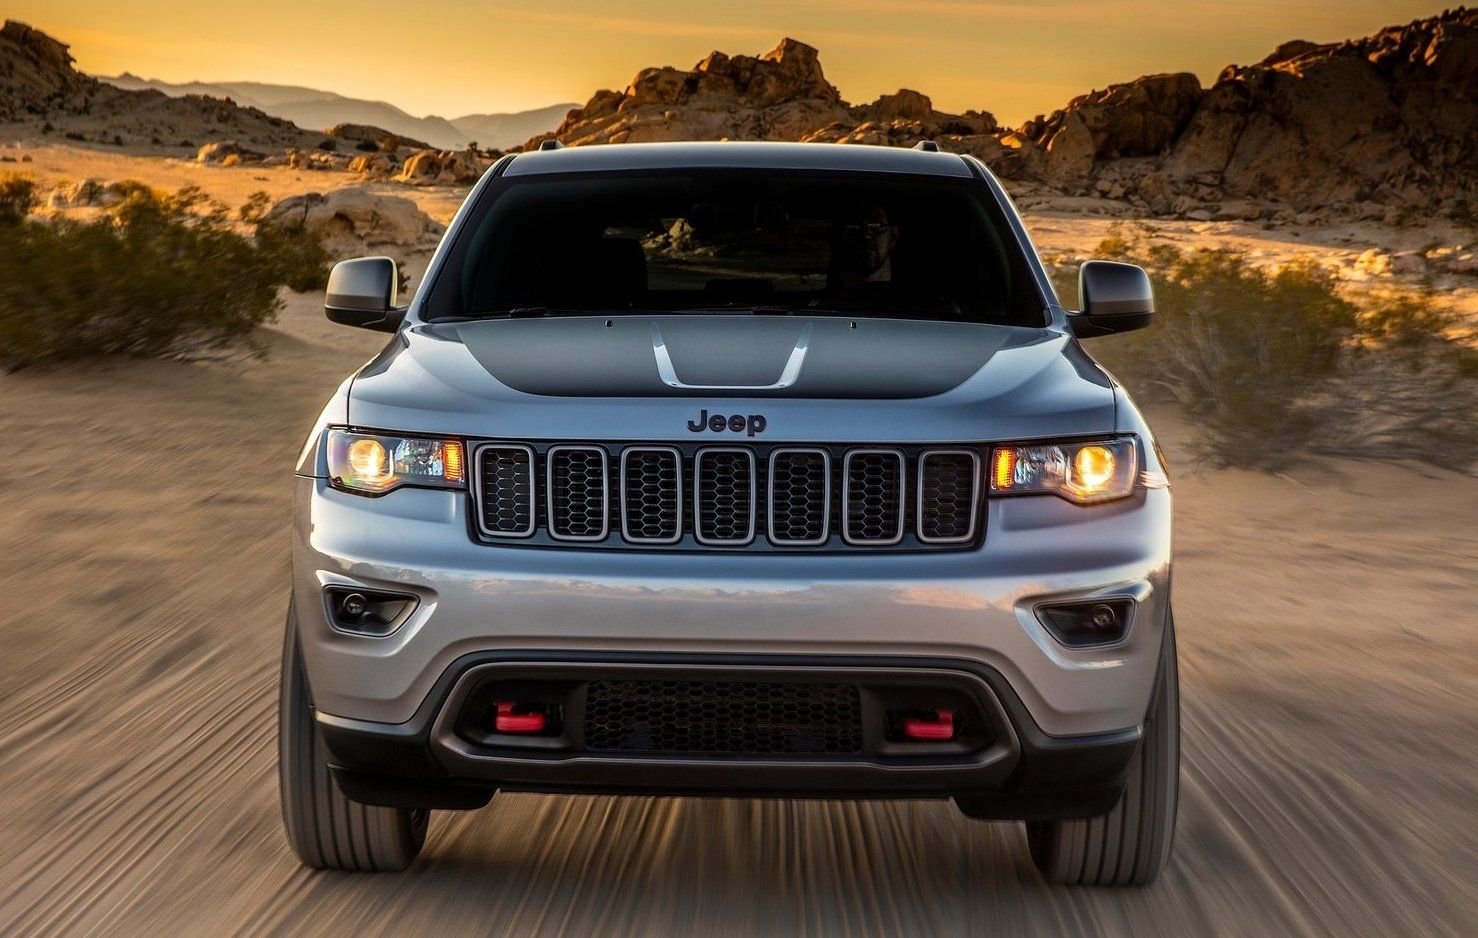 The Year 2020 Will Be Huge For Cars And When I State Cars I Suggest Suv Cars In This Post We Will Present The 2020 Jeep Cherokee This Suv Is Most Likely Th